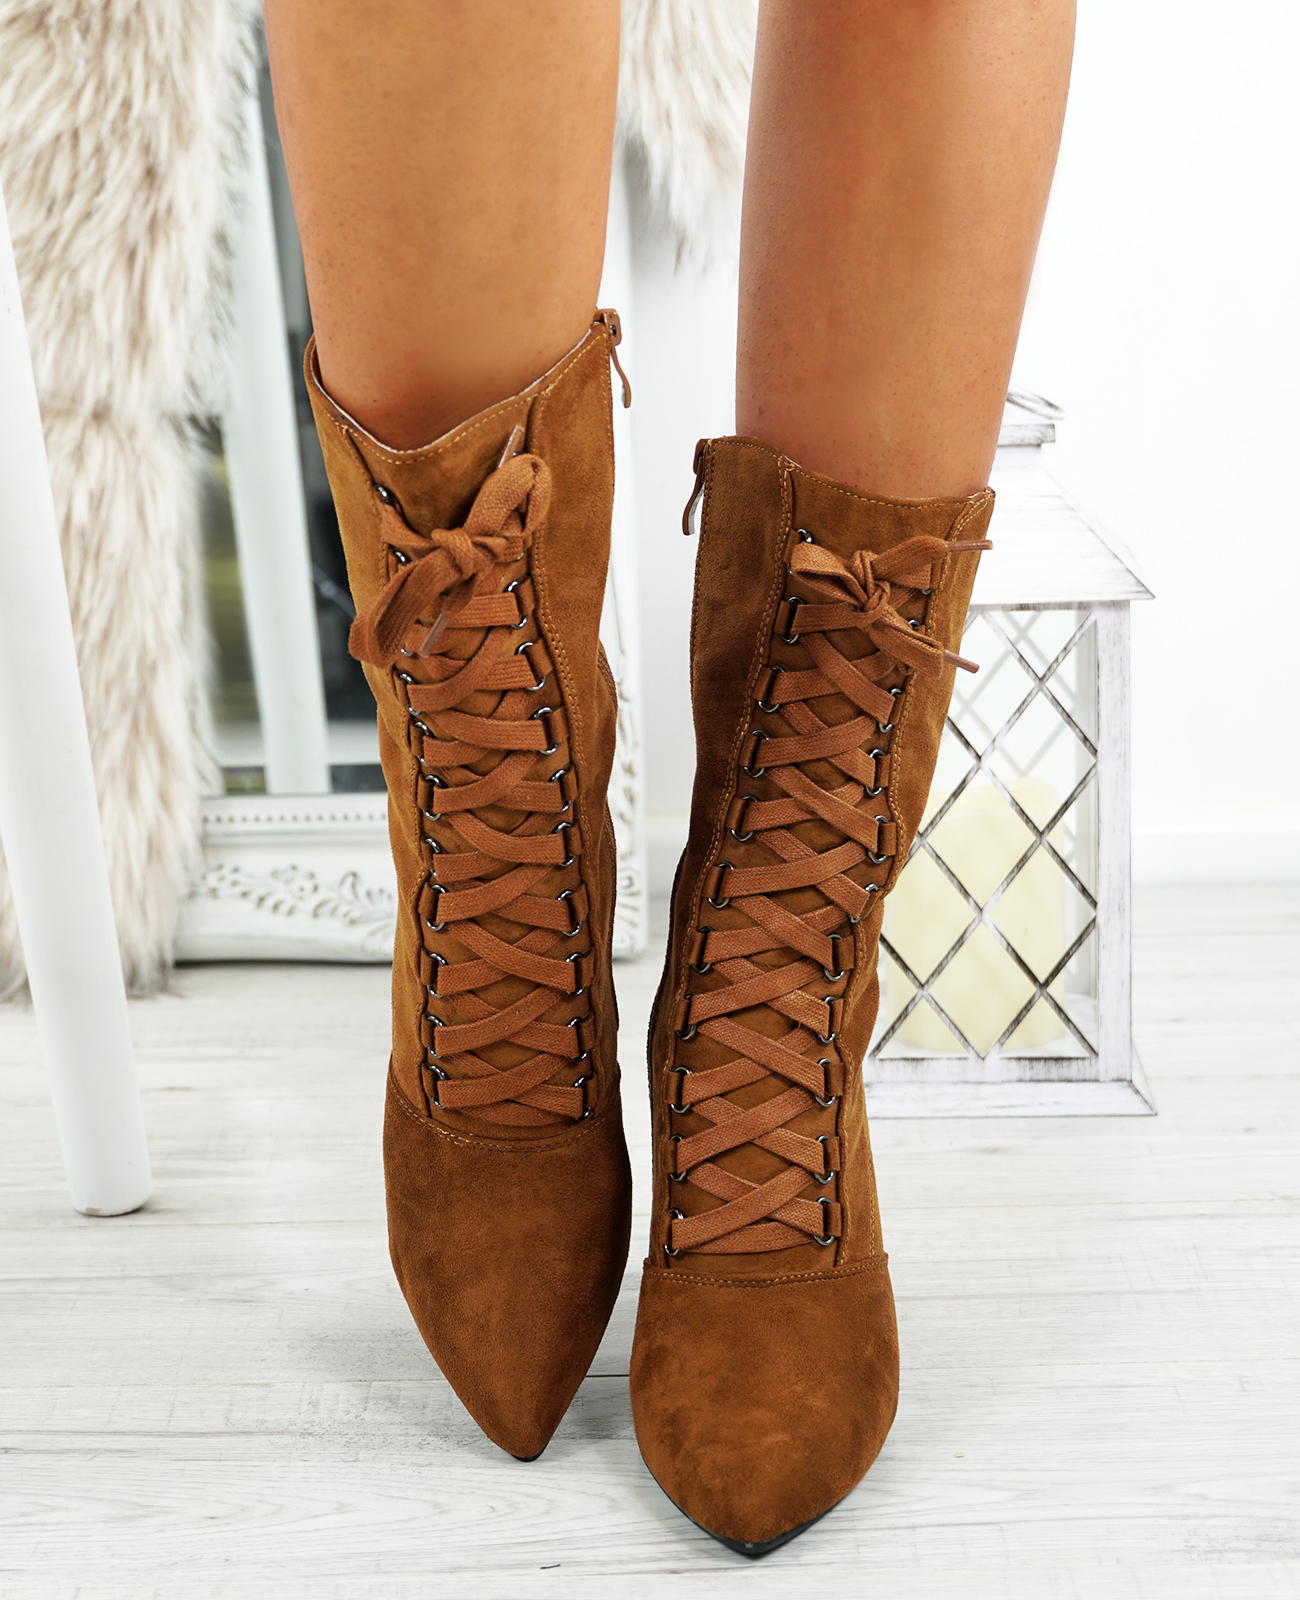 LADIES-WOMENS-HIGH-TOP-ANKLE-BOOTS-SIDE-ZIP-LACE-BLOCK-HEEL-POINTED-TOE-SHOES thumbnail 15